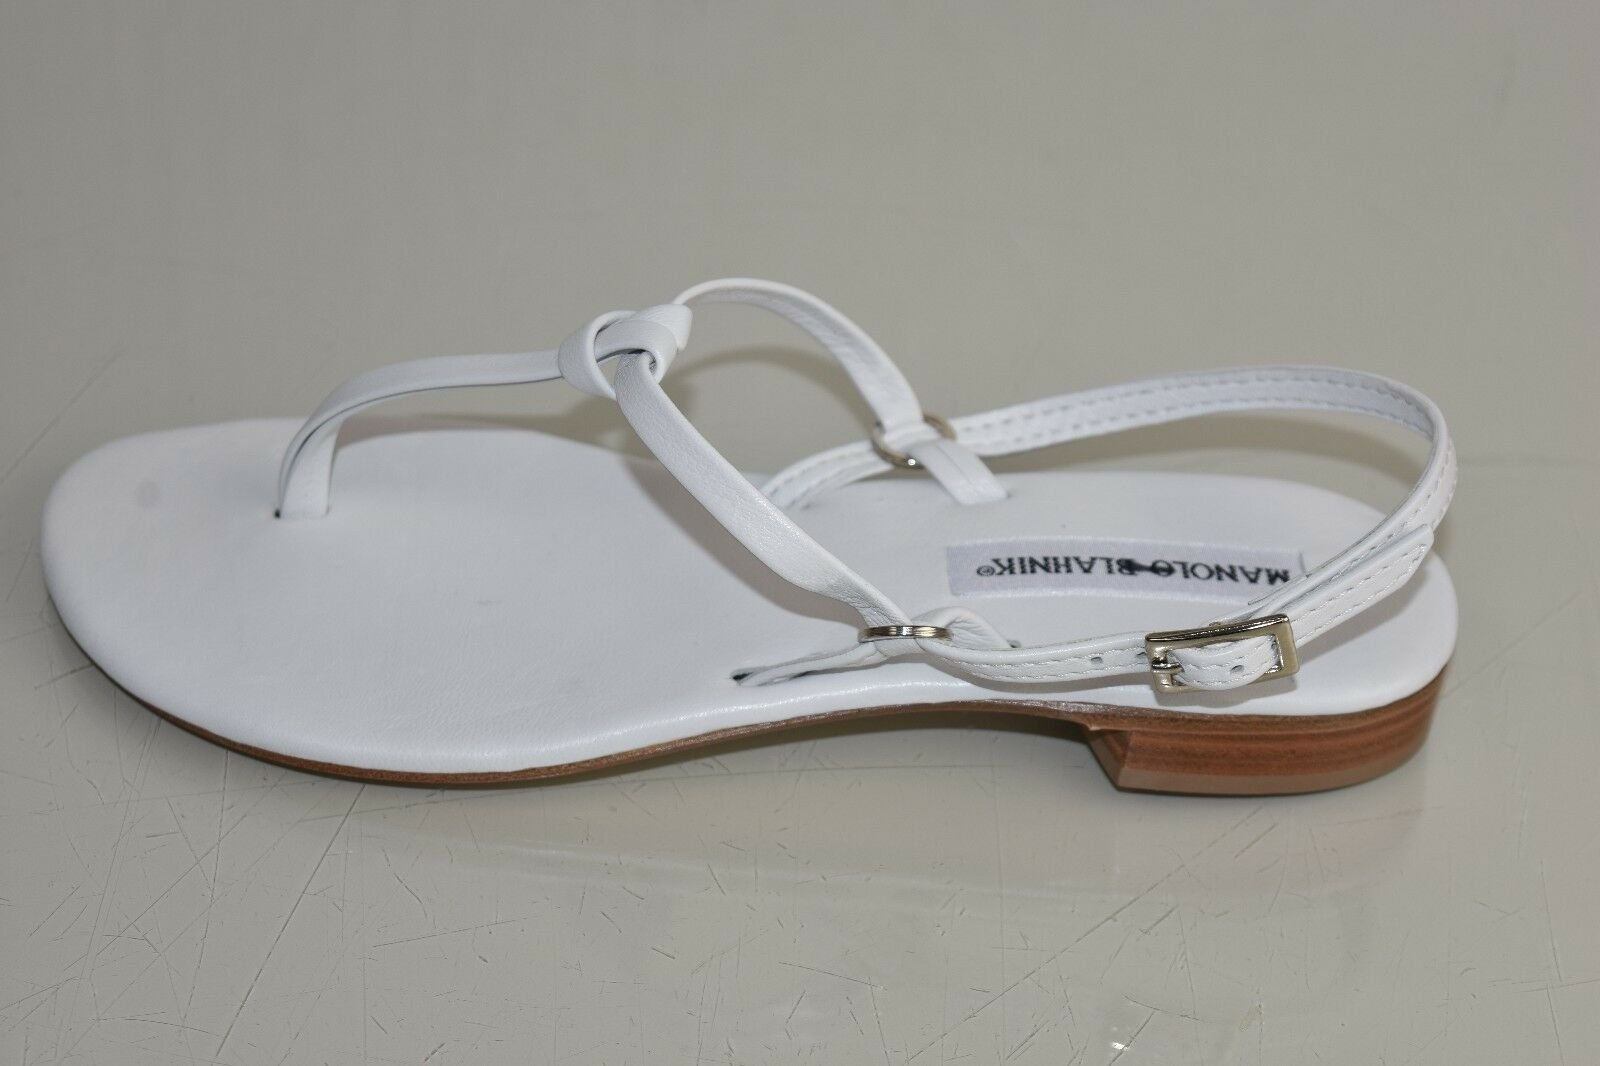 735 735 735  New Manolo Blahnik blanc Leather Thong Flats Strappy Sandals Flat chaussures 37 f1d892